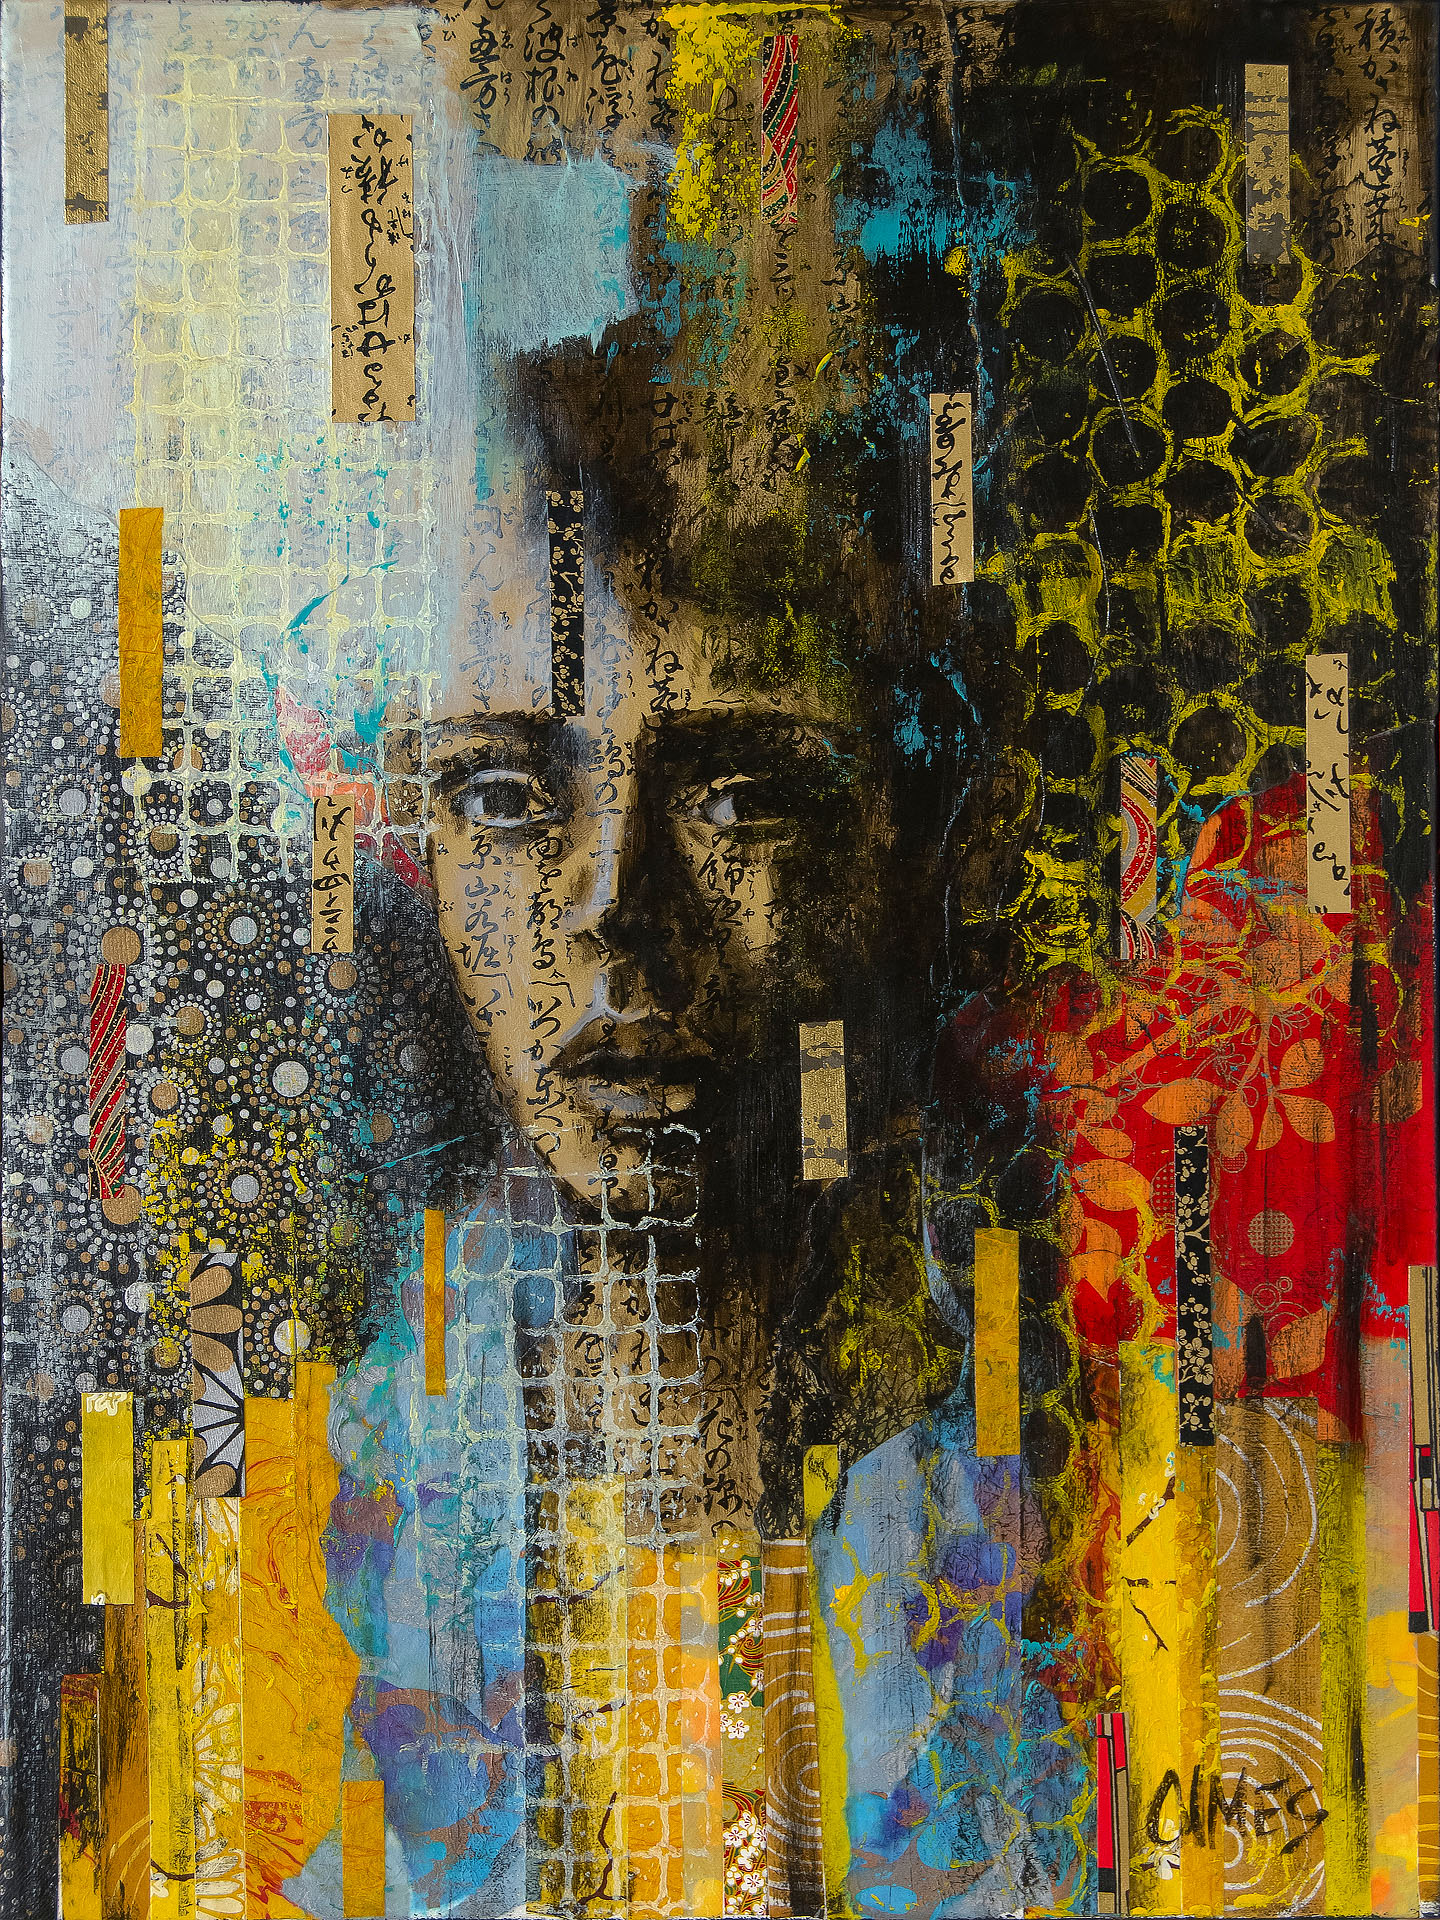 Cindy Olmes, # 20-48, Untitled, mixed media